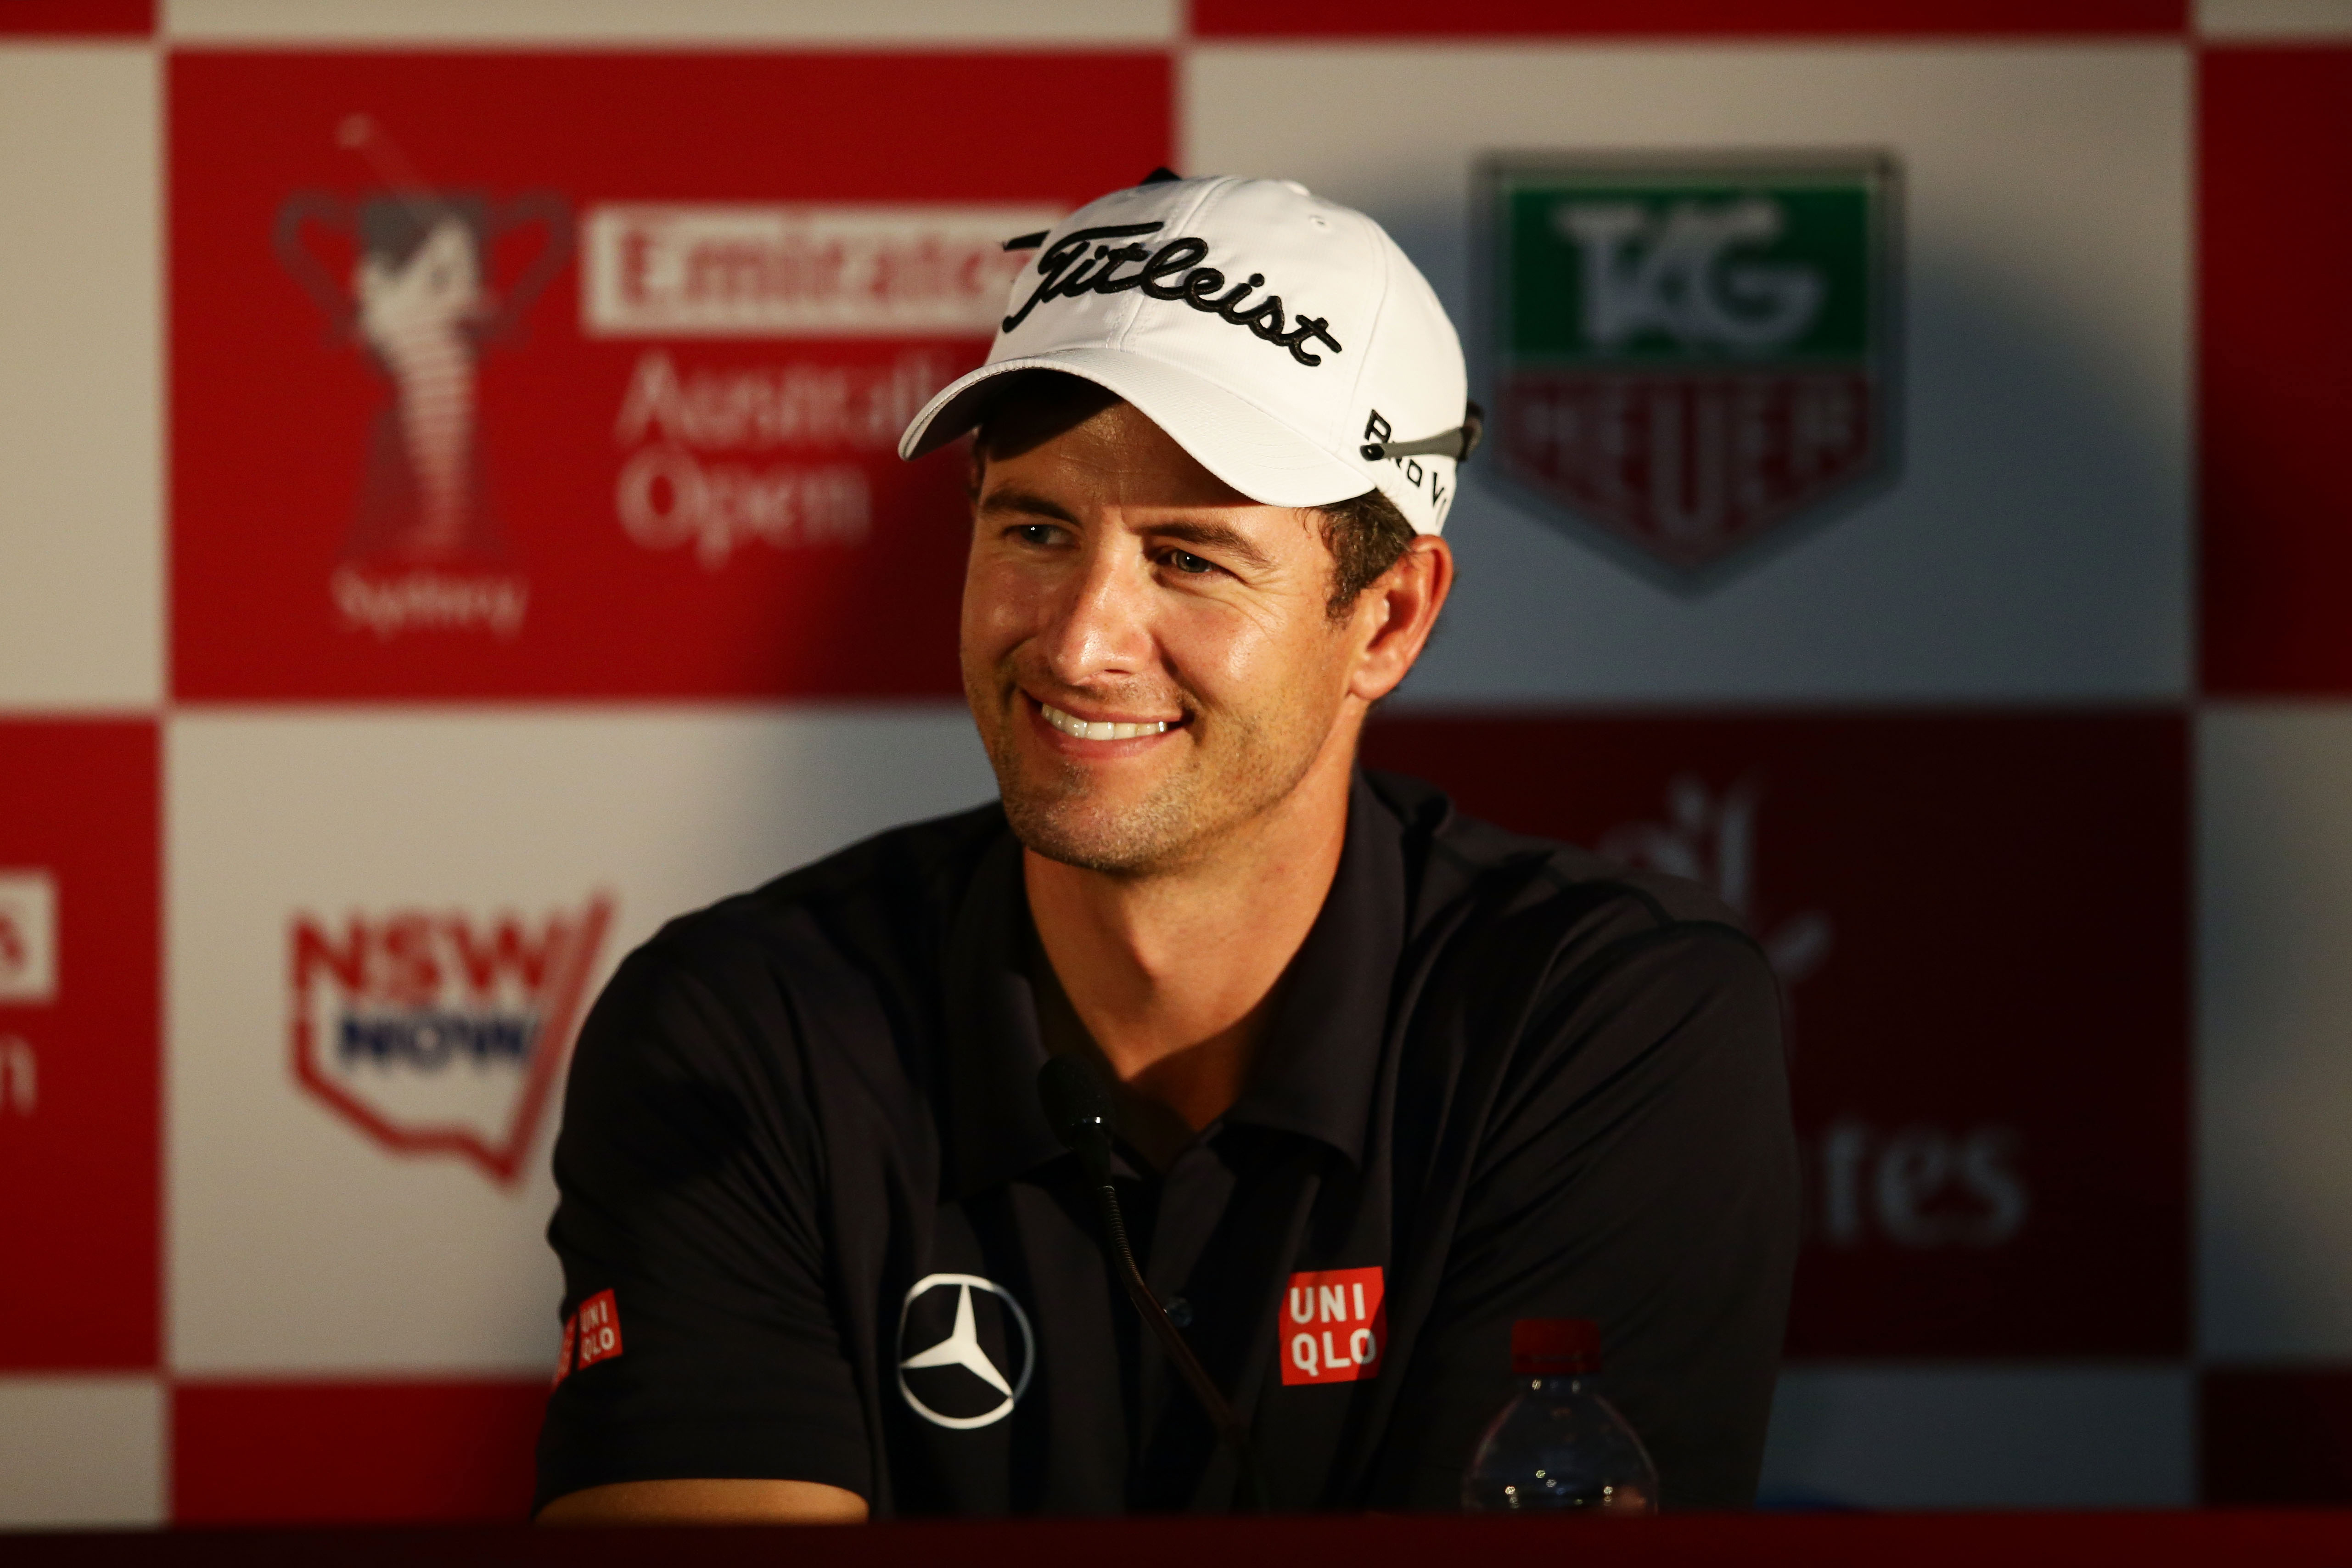 Adam Scott speaks to the media after a round at the 2014 Australian Open.